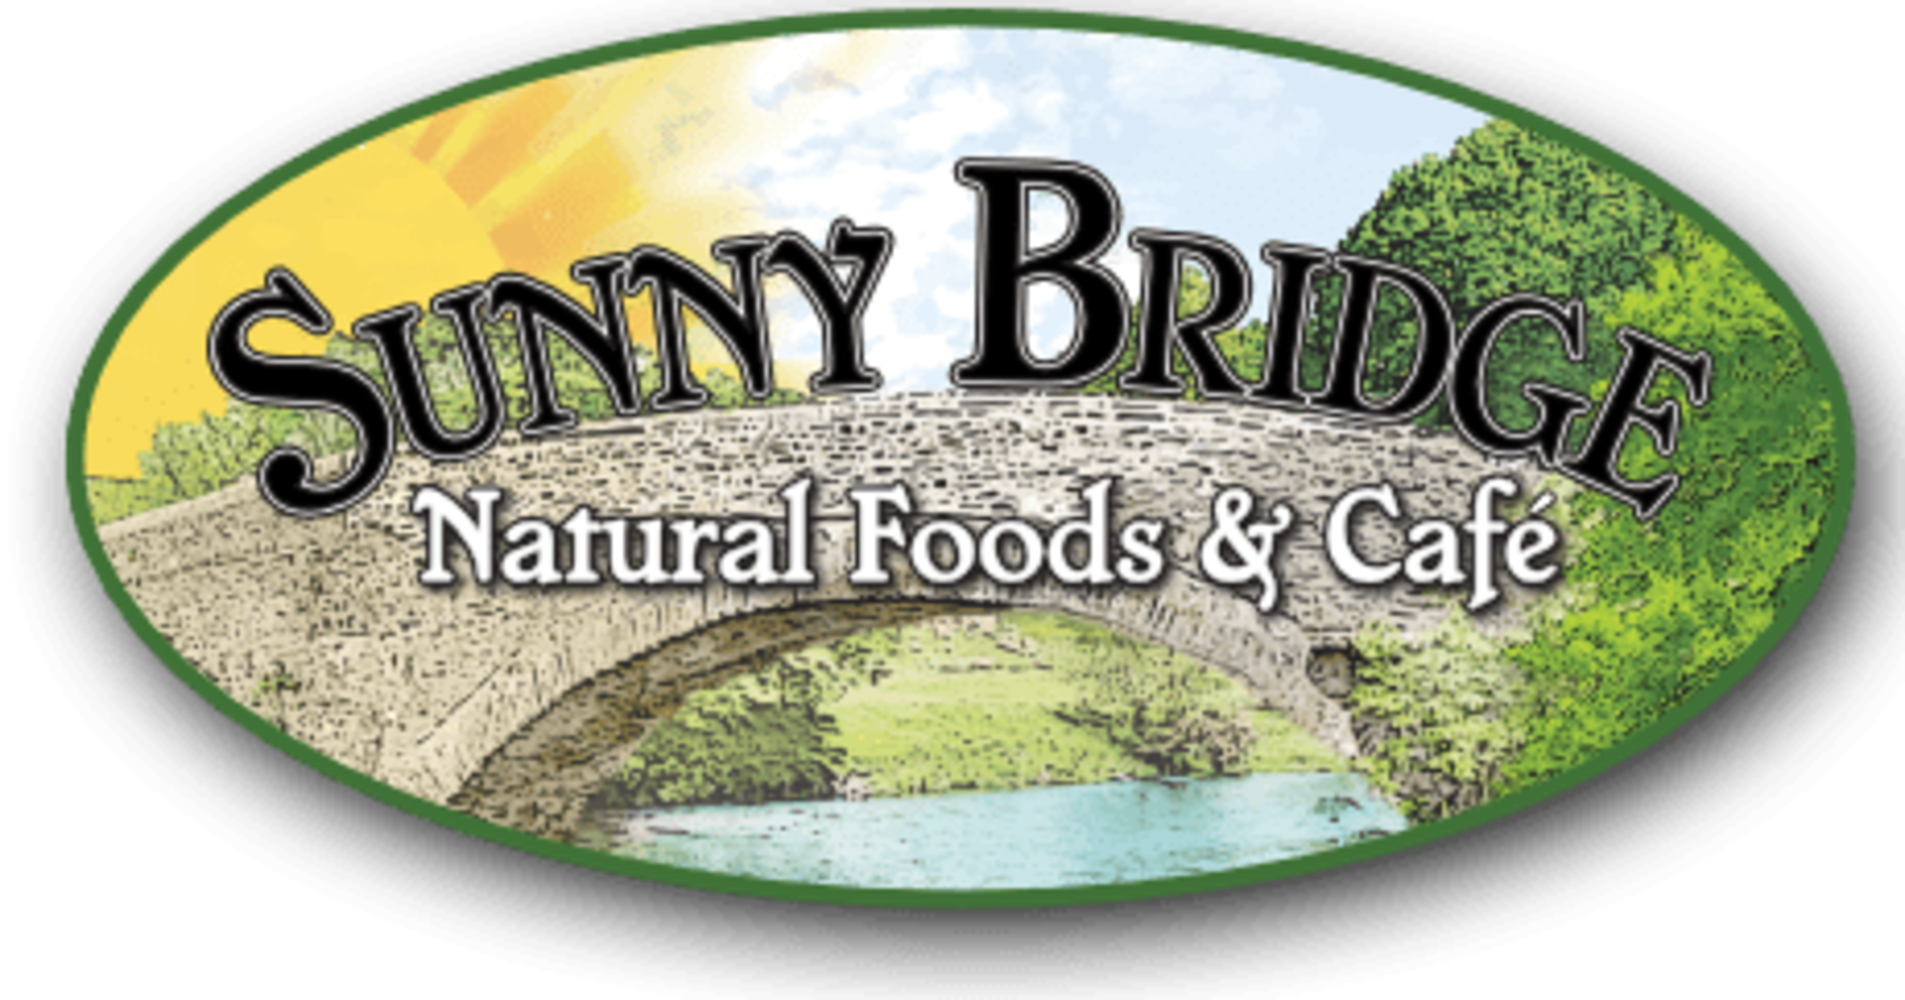 Sunny Bridge Natural Foods, Bakery & Cafe - Turnkey Opportunity Going to Auction!